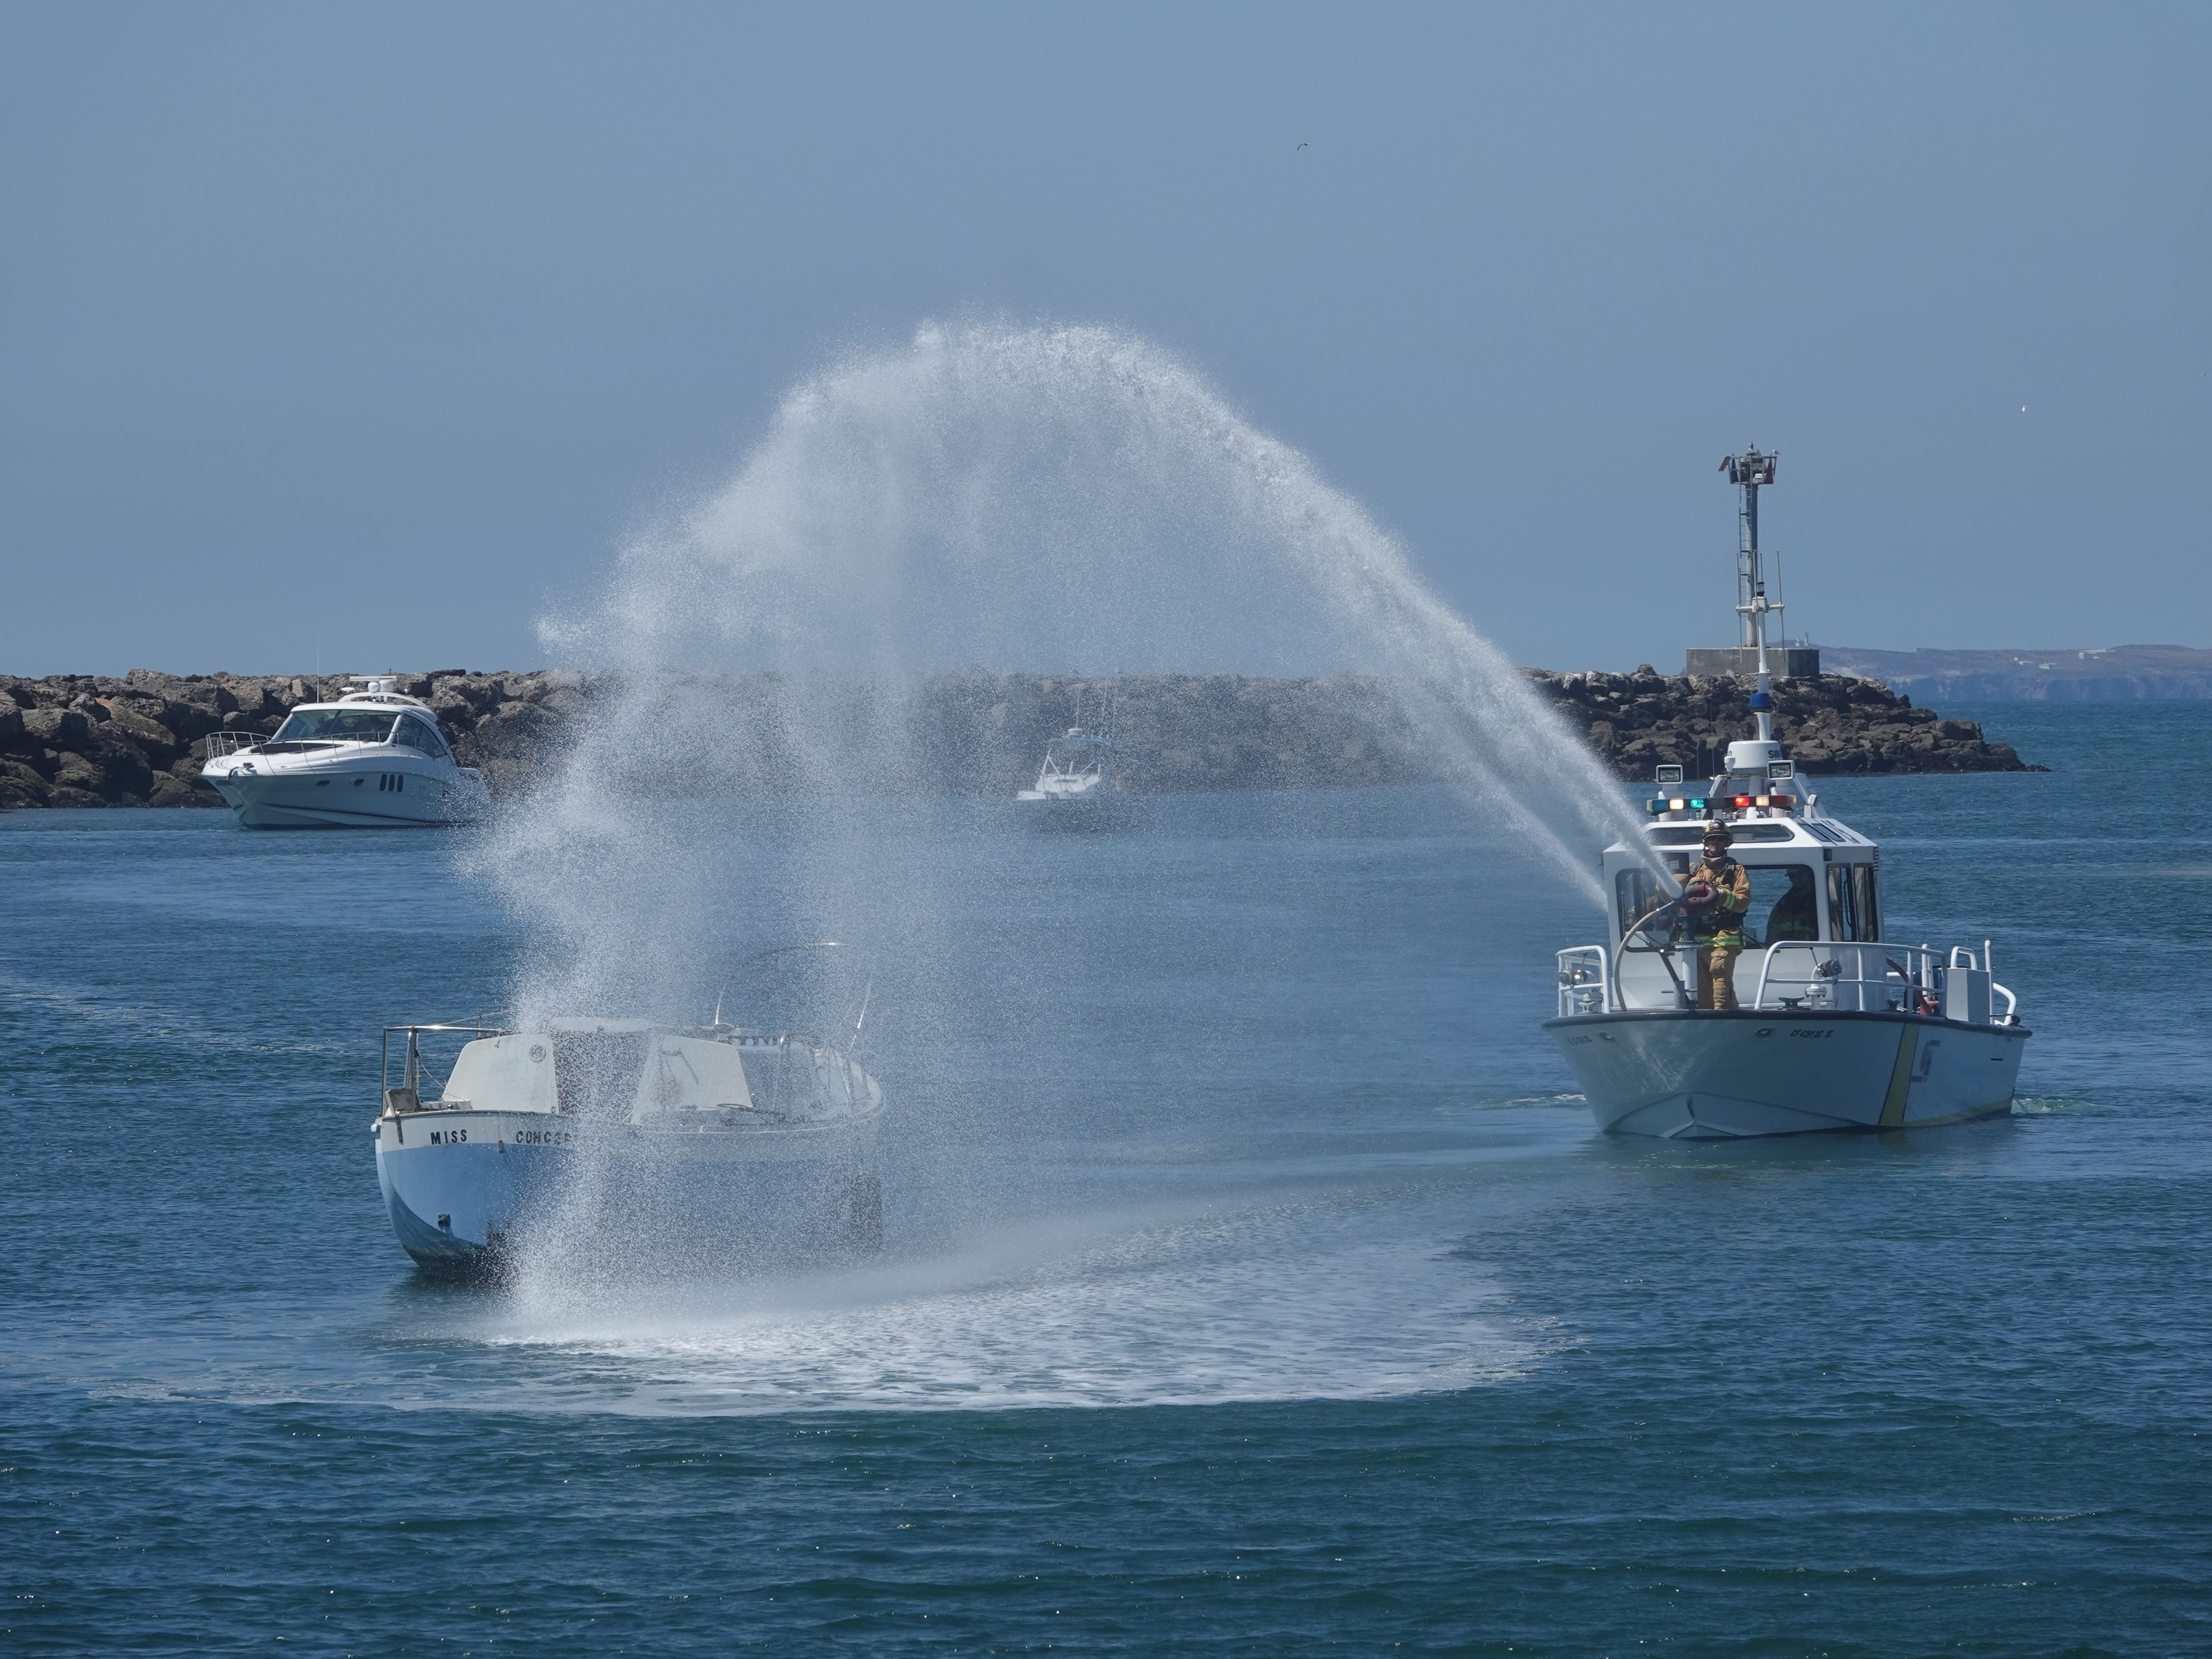 A plume of water douses a small craft during a rescue demonstration Saturday at the Coast Guard's Safe Boating Expo at Channel Islands Harbor.